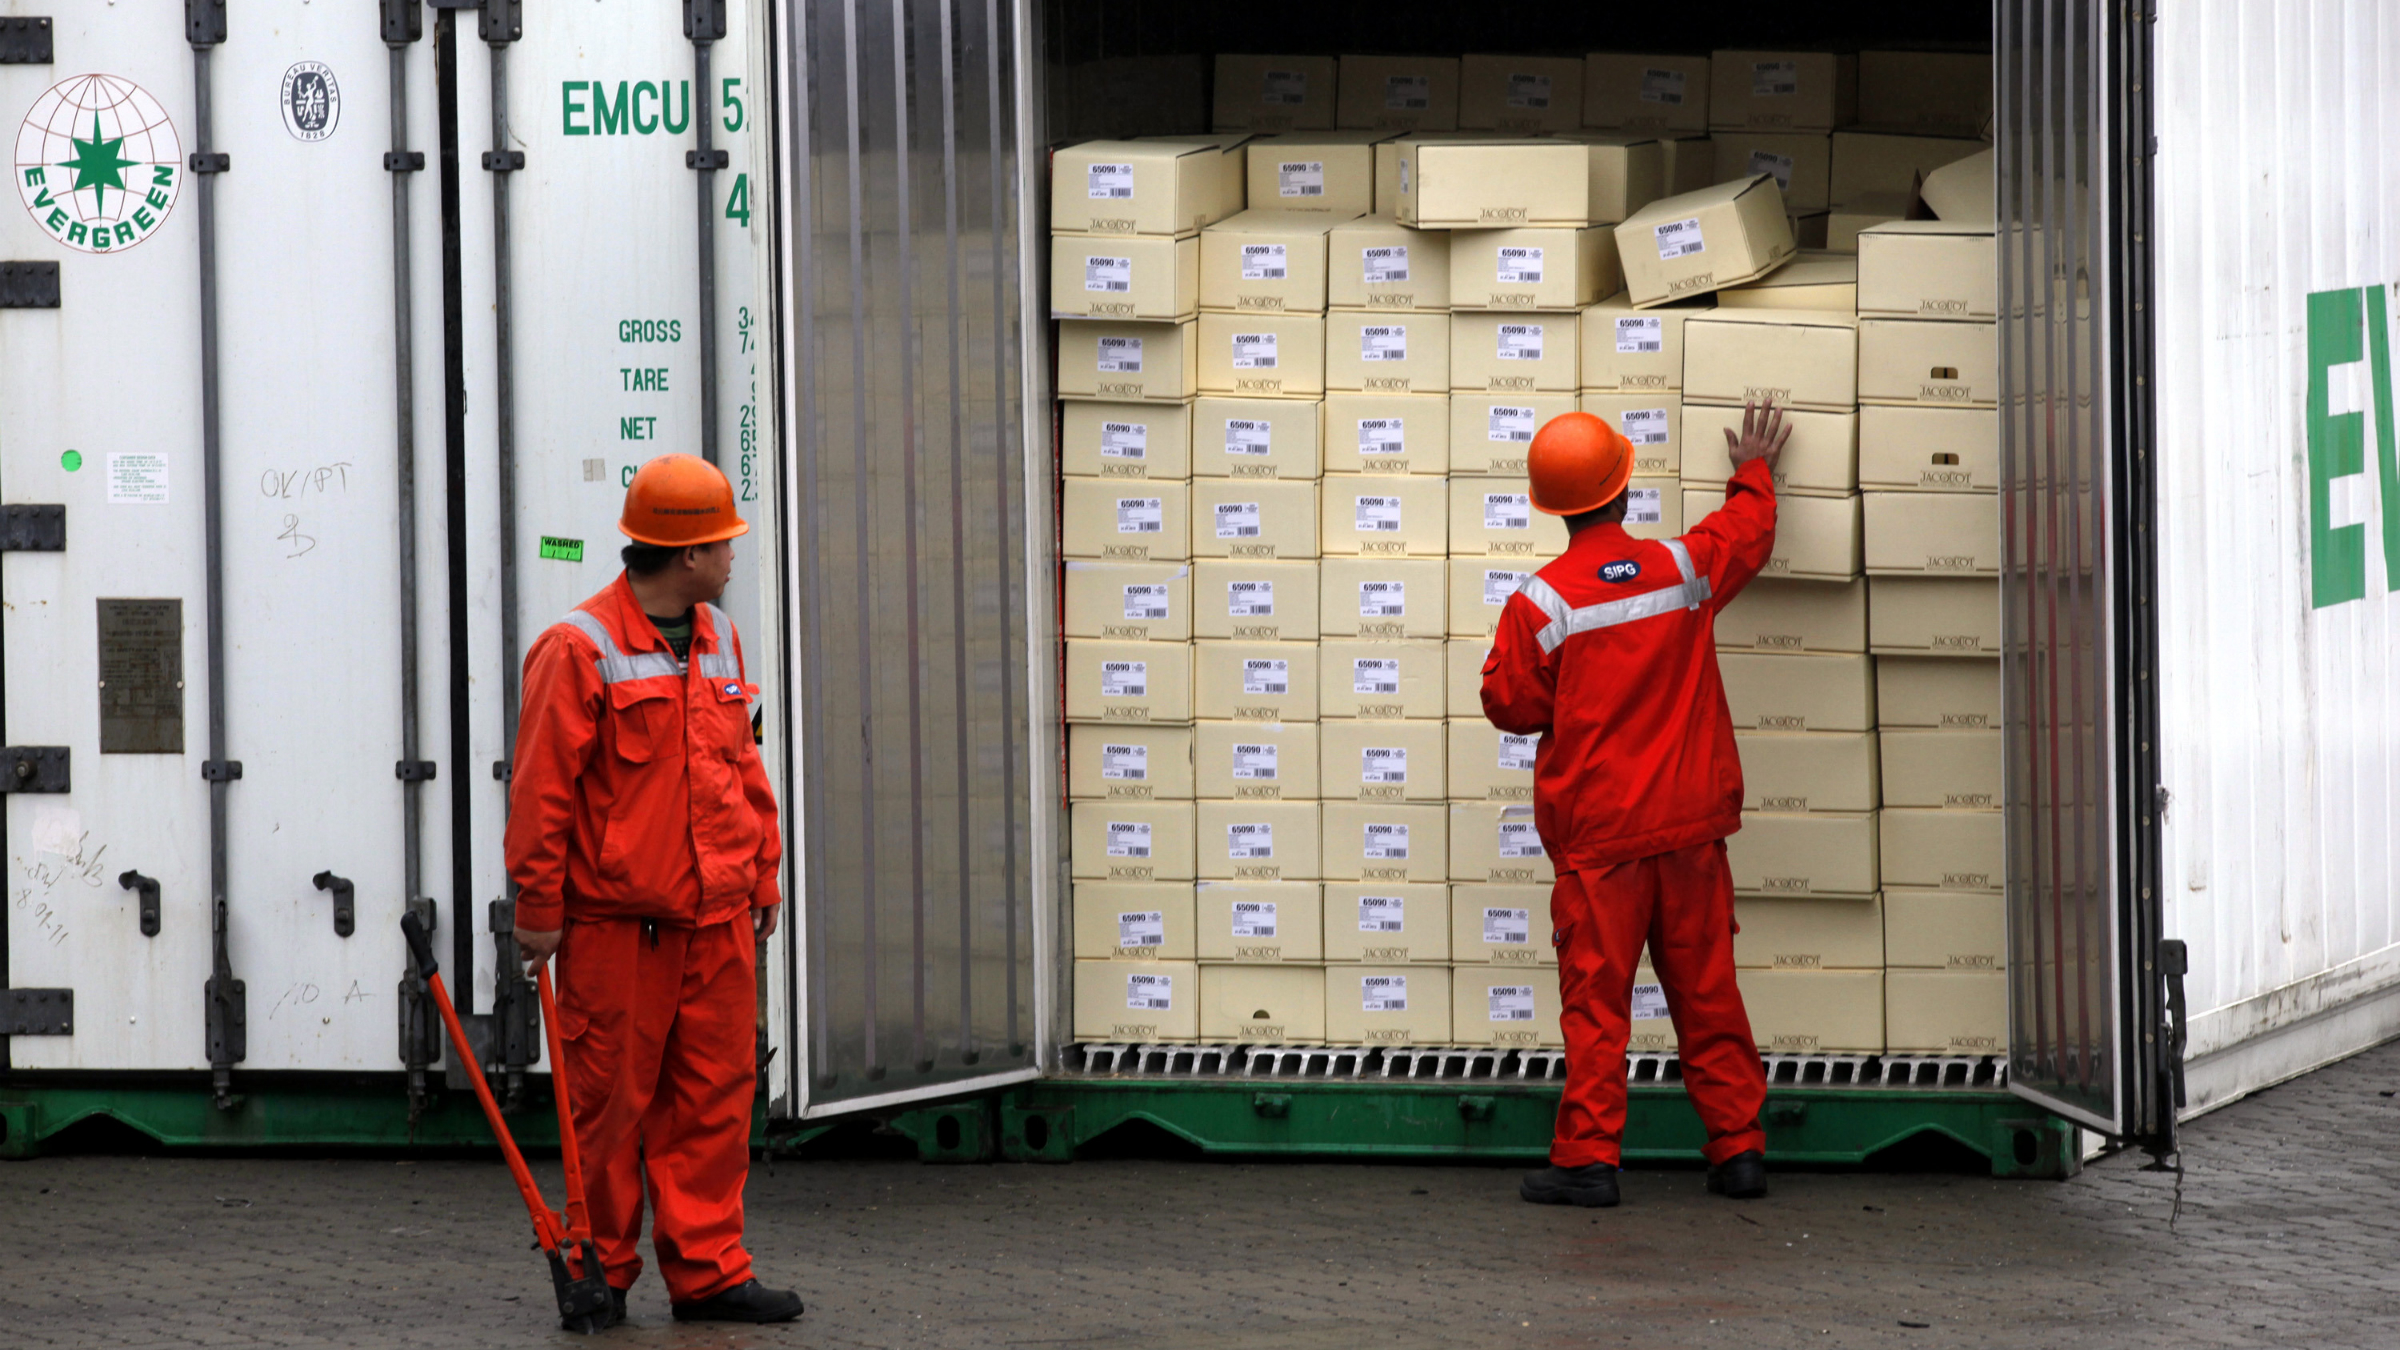 In this Wednesday, Dec. 7, 2011 file photo, custom officers check a container at the Yangshan Port in Shanghai, China. China says its trade rebounded in February after a Lunar New Year slowdown but a broader measure gave clear signs both global and Chinese demand are weakening. Customs data Saturday, March 10, 2012 showed exports grew 18.4 percent over a year earlier, up from January's 0.5 percent contraction. Imports jumped 39.6 percent, up from the previous month's decline of 15 percent.